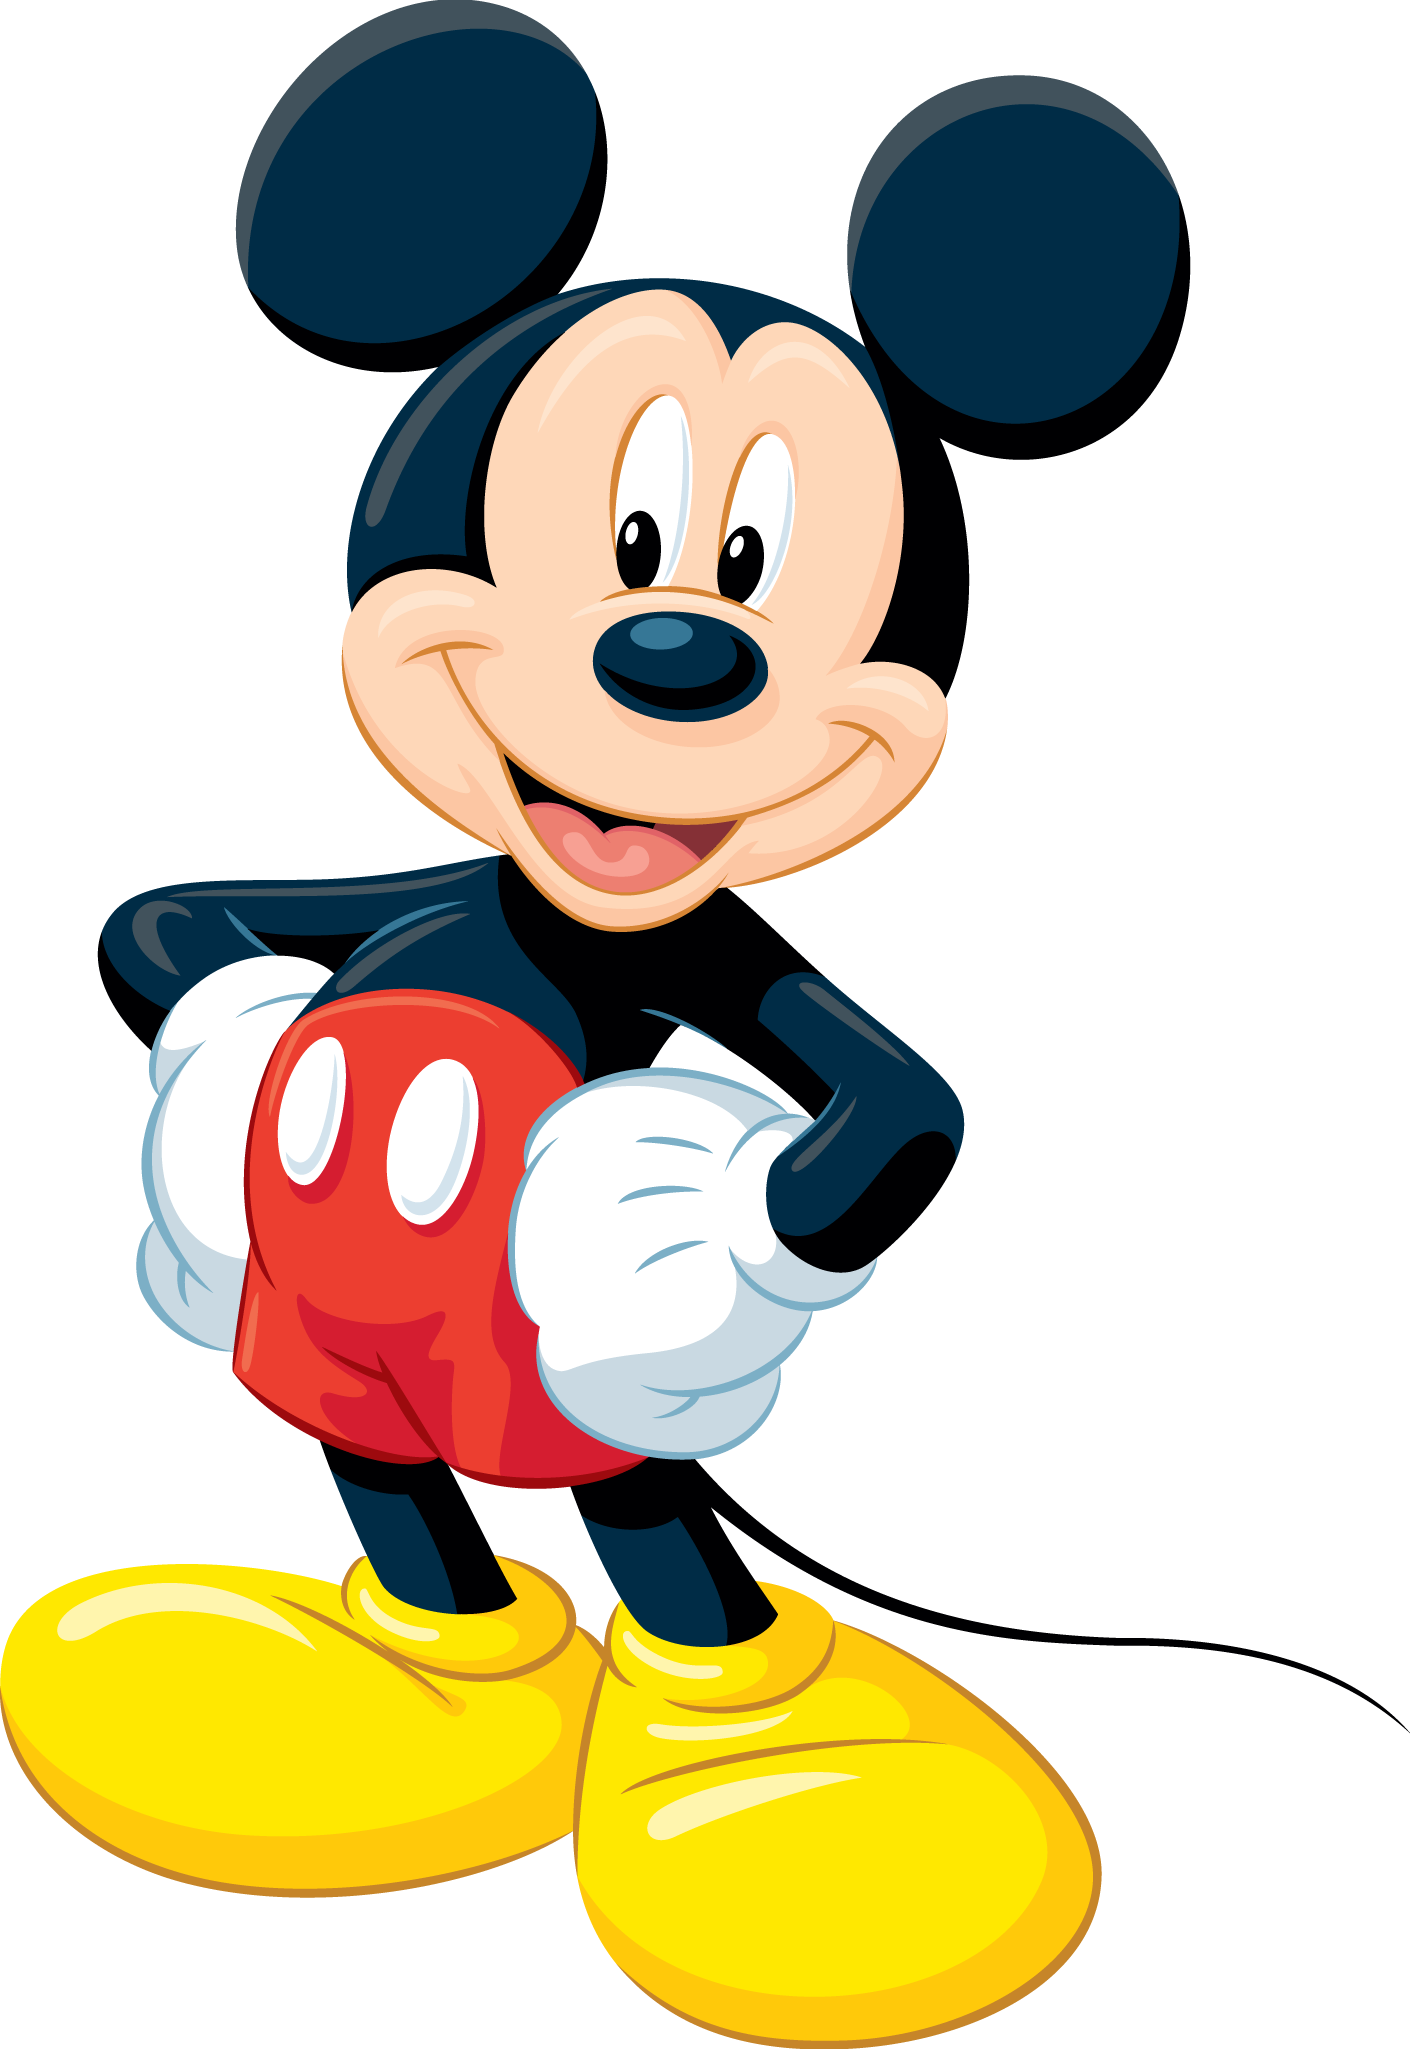 Mickey Head Png Hd Transparent Mickey Head Hdpng Images Pluspng